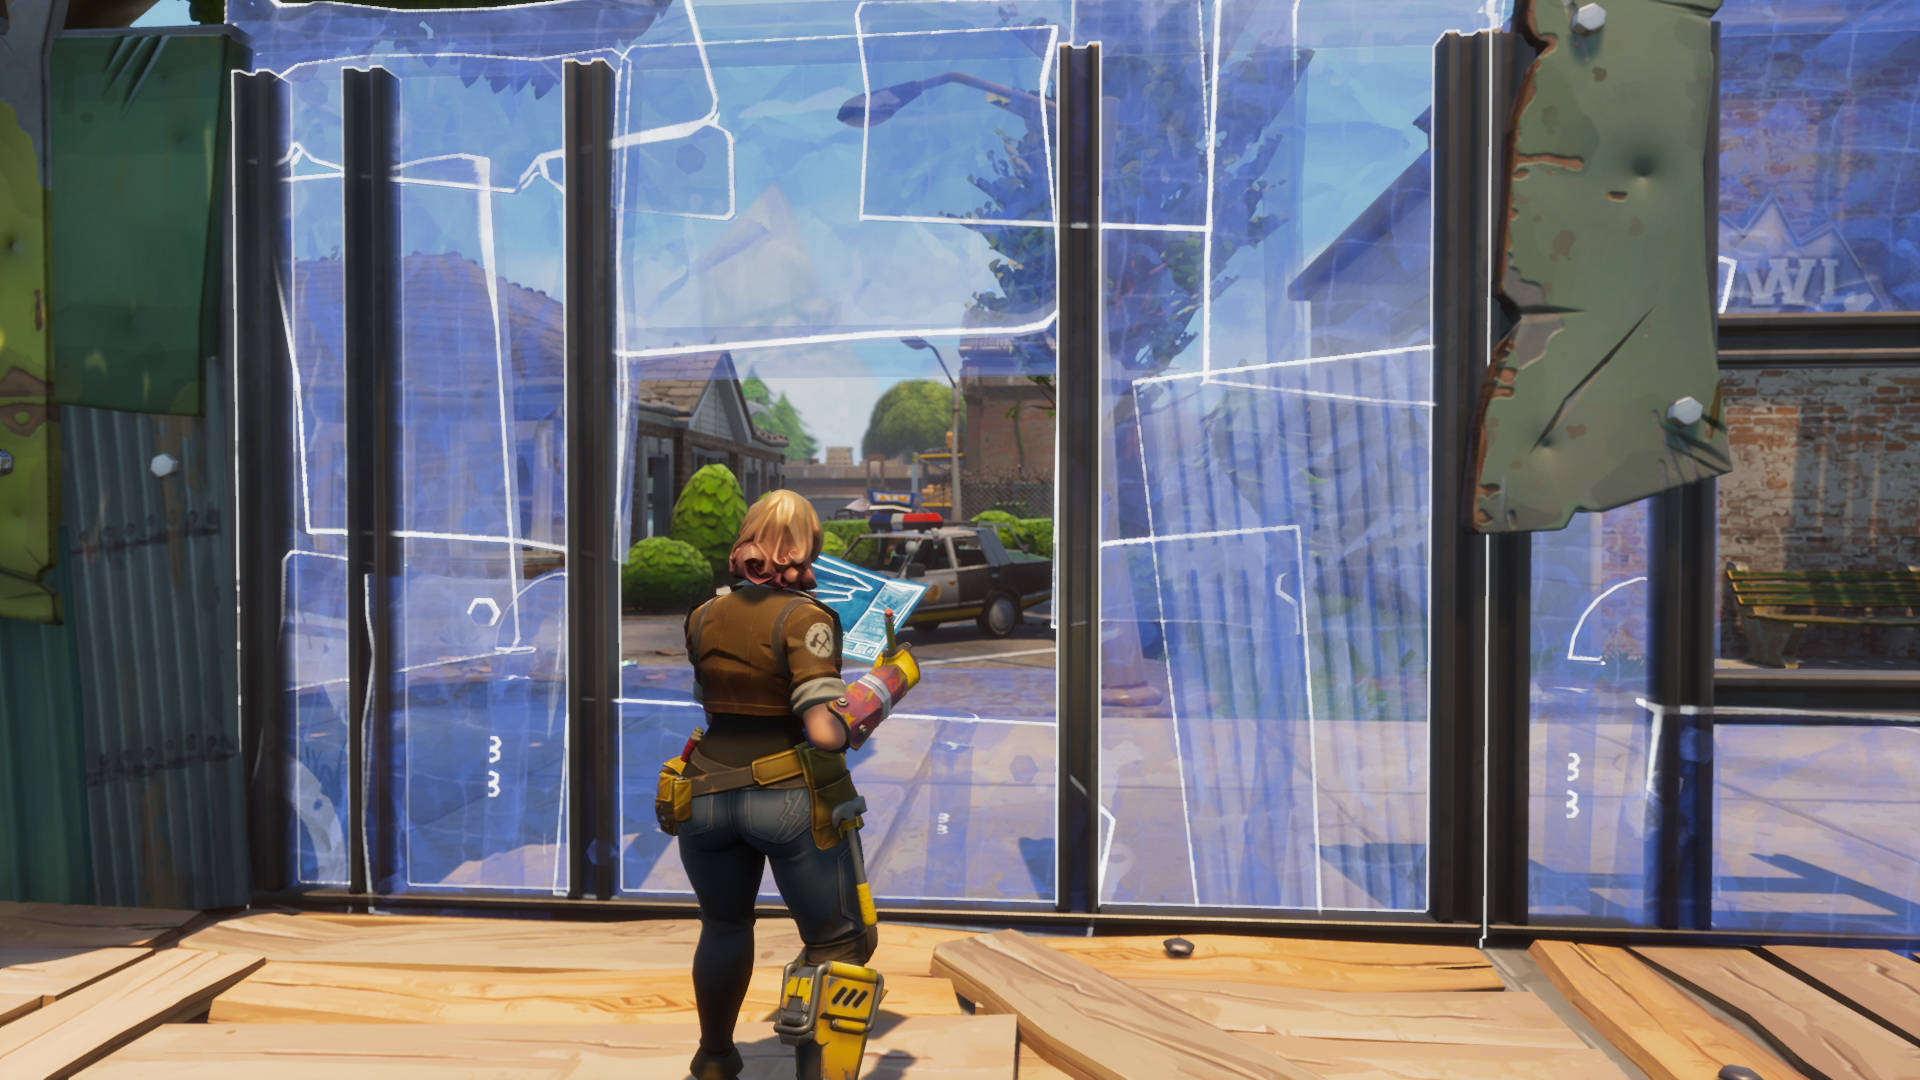 New 'Fortnite' Battle Royale Mode Misses What Makes the Game